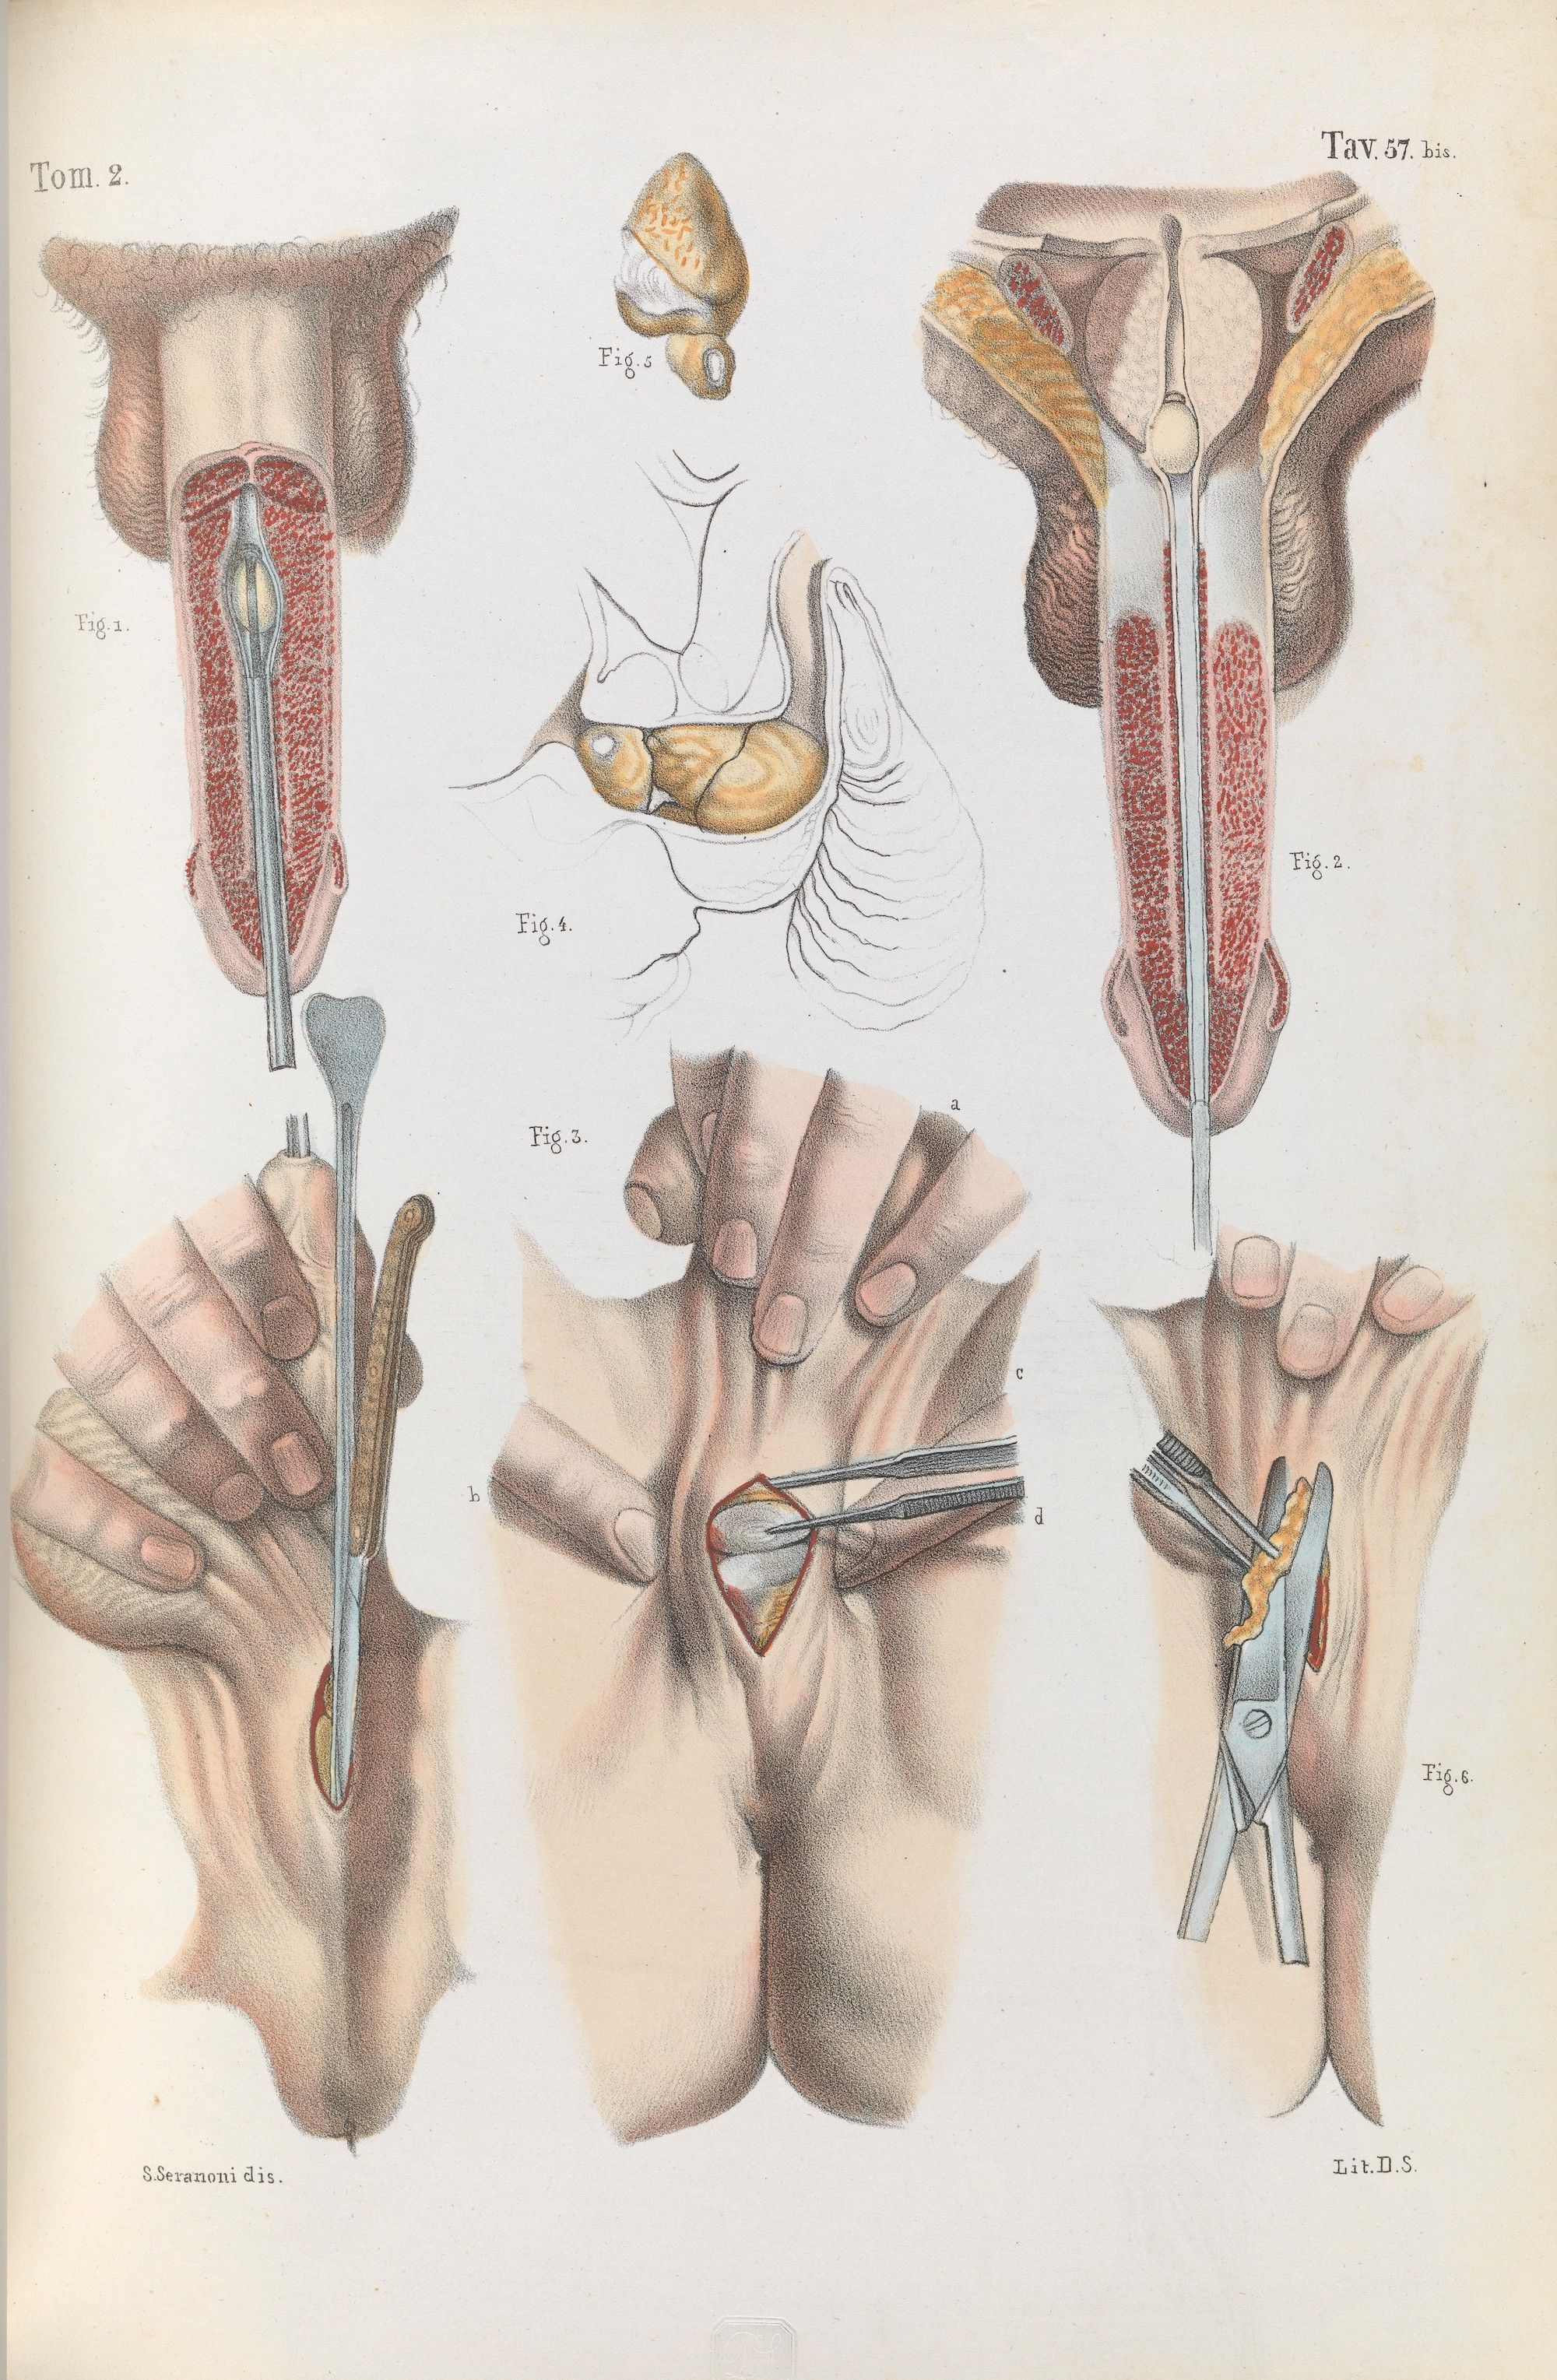 19th Century Illustrations For The Surgical Removal Of Unwanted Parts Of The Human Body Flashbak